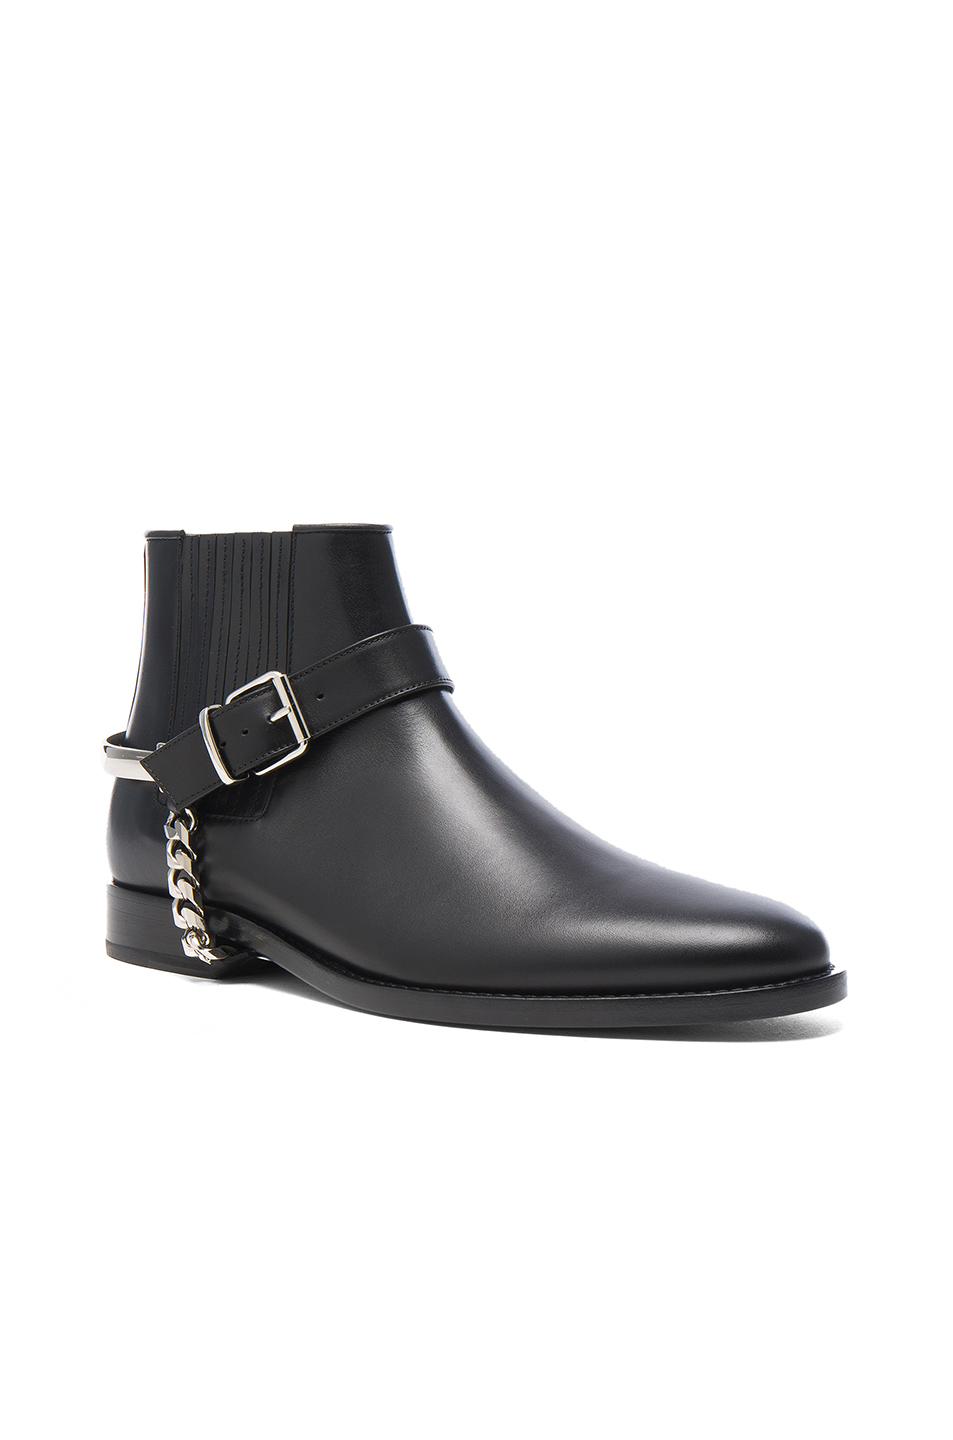 BALMAIN Leather Boots in Black